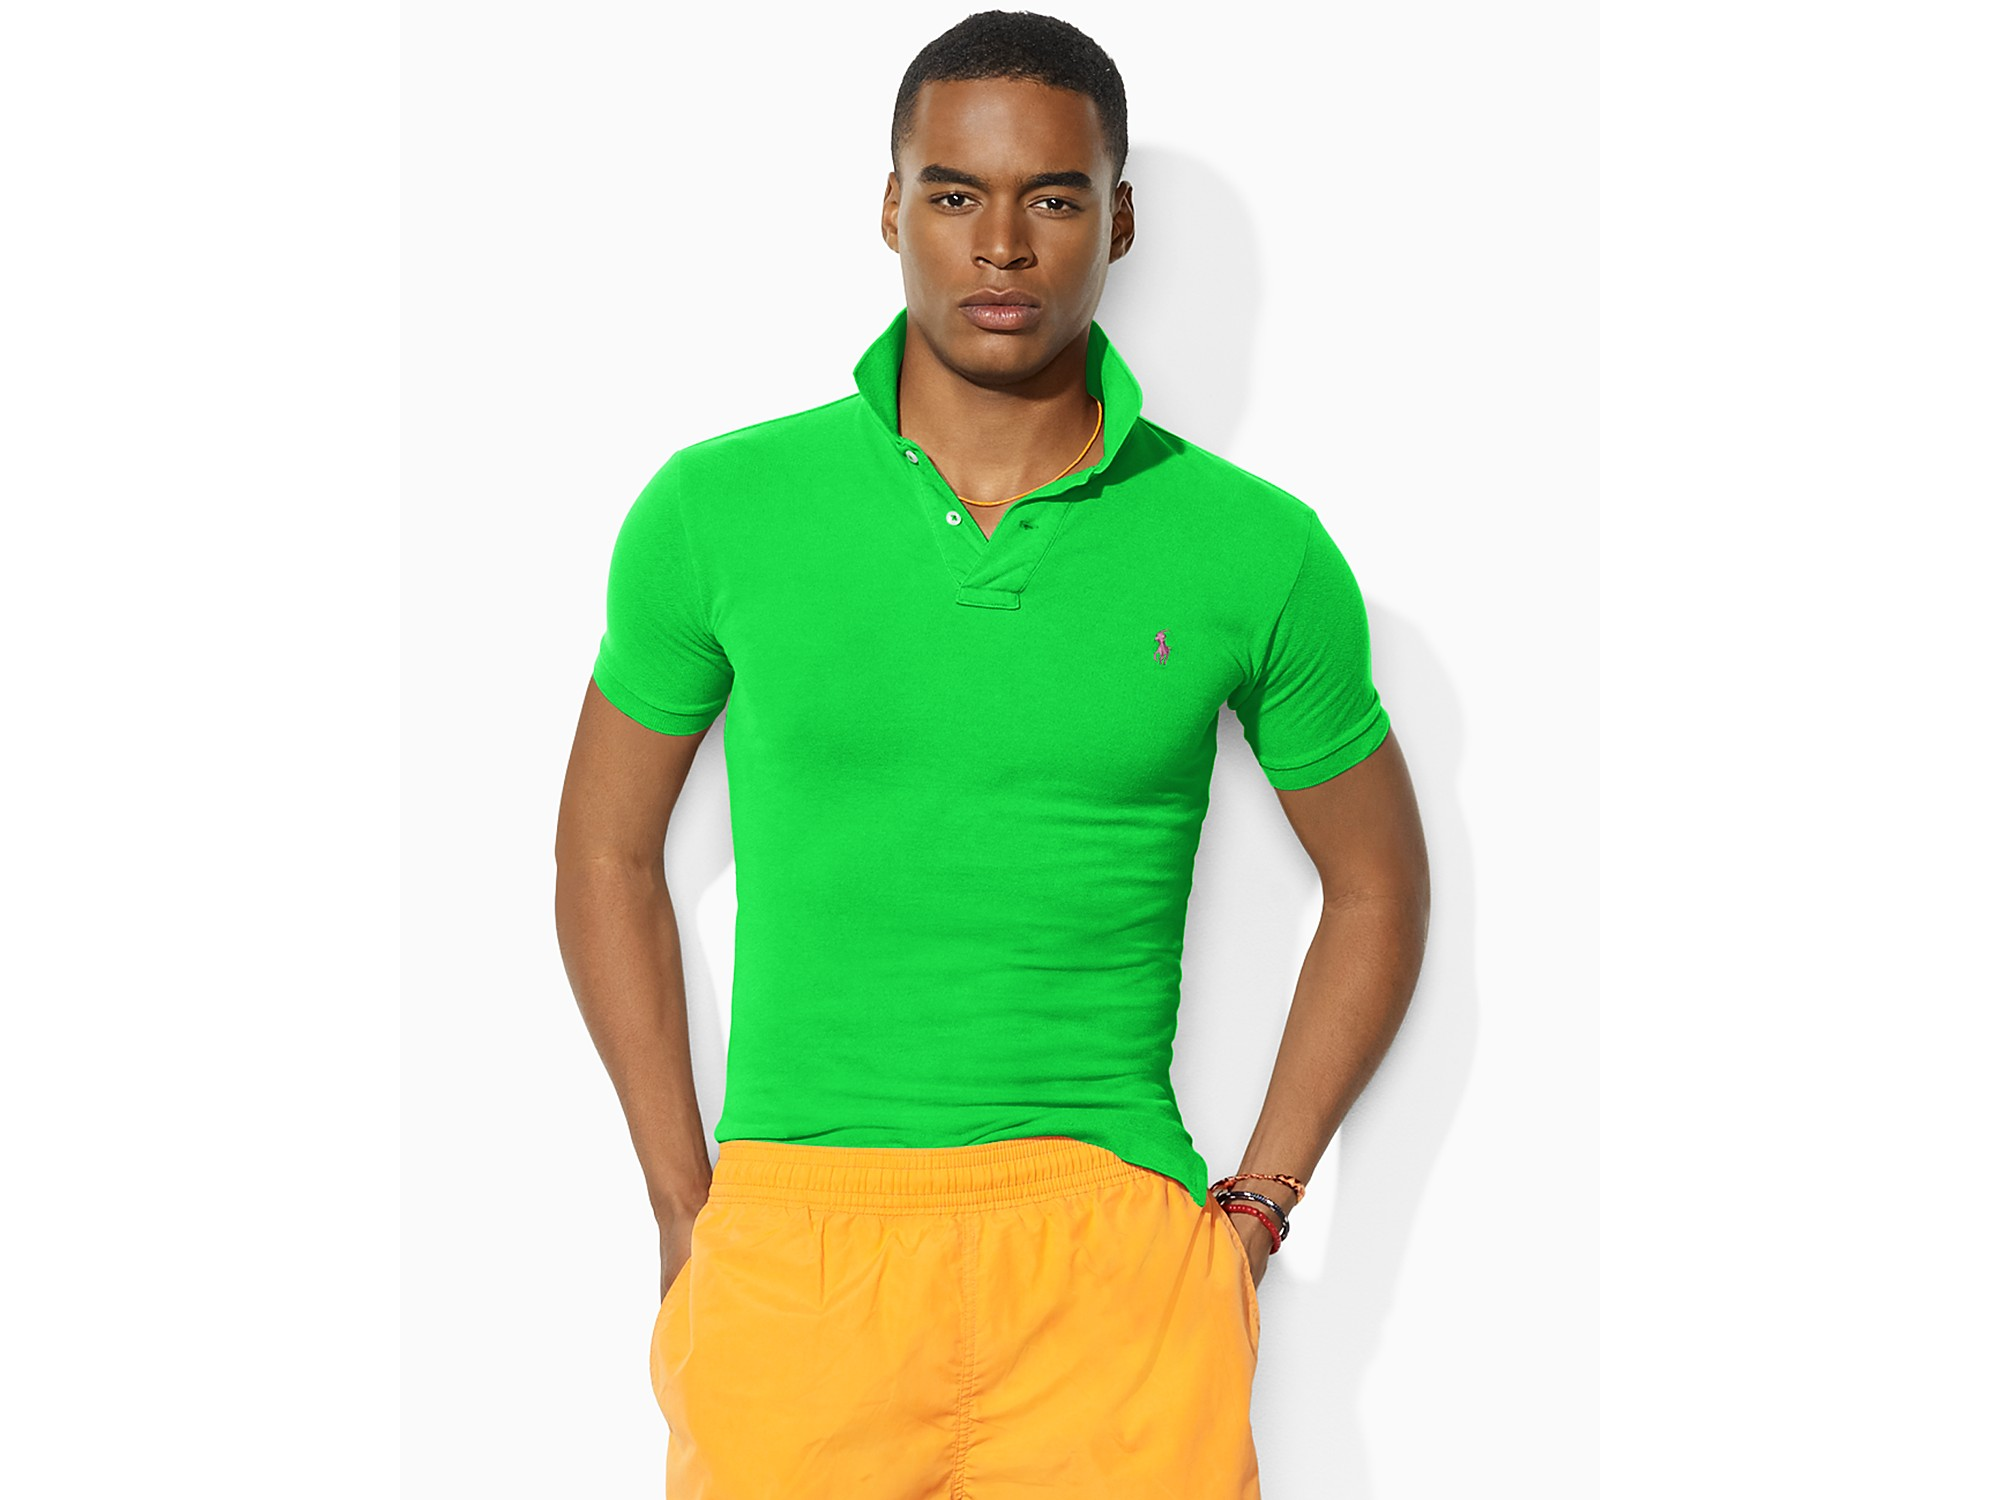 ... Polo Ralph Lauren Green Black Breathable Short Sleeved